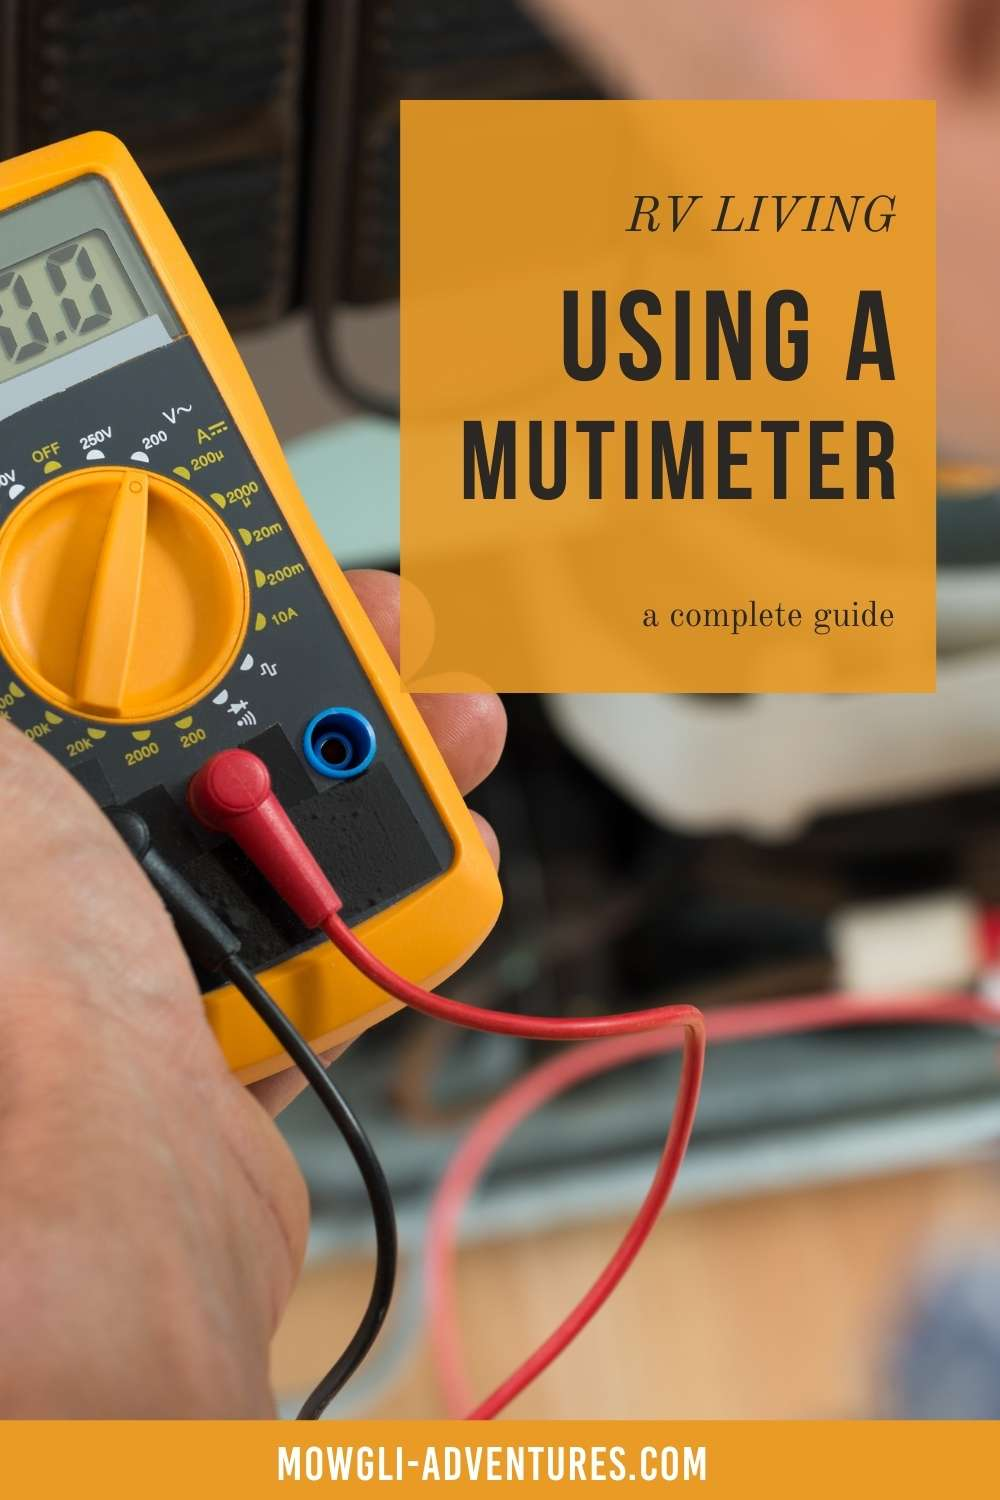 How every RVer can use a Multimeter